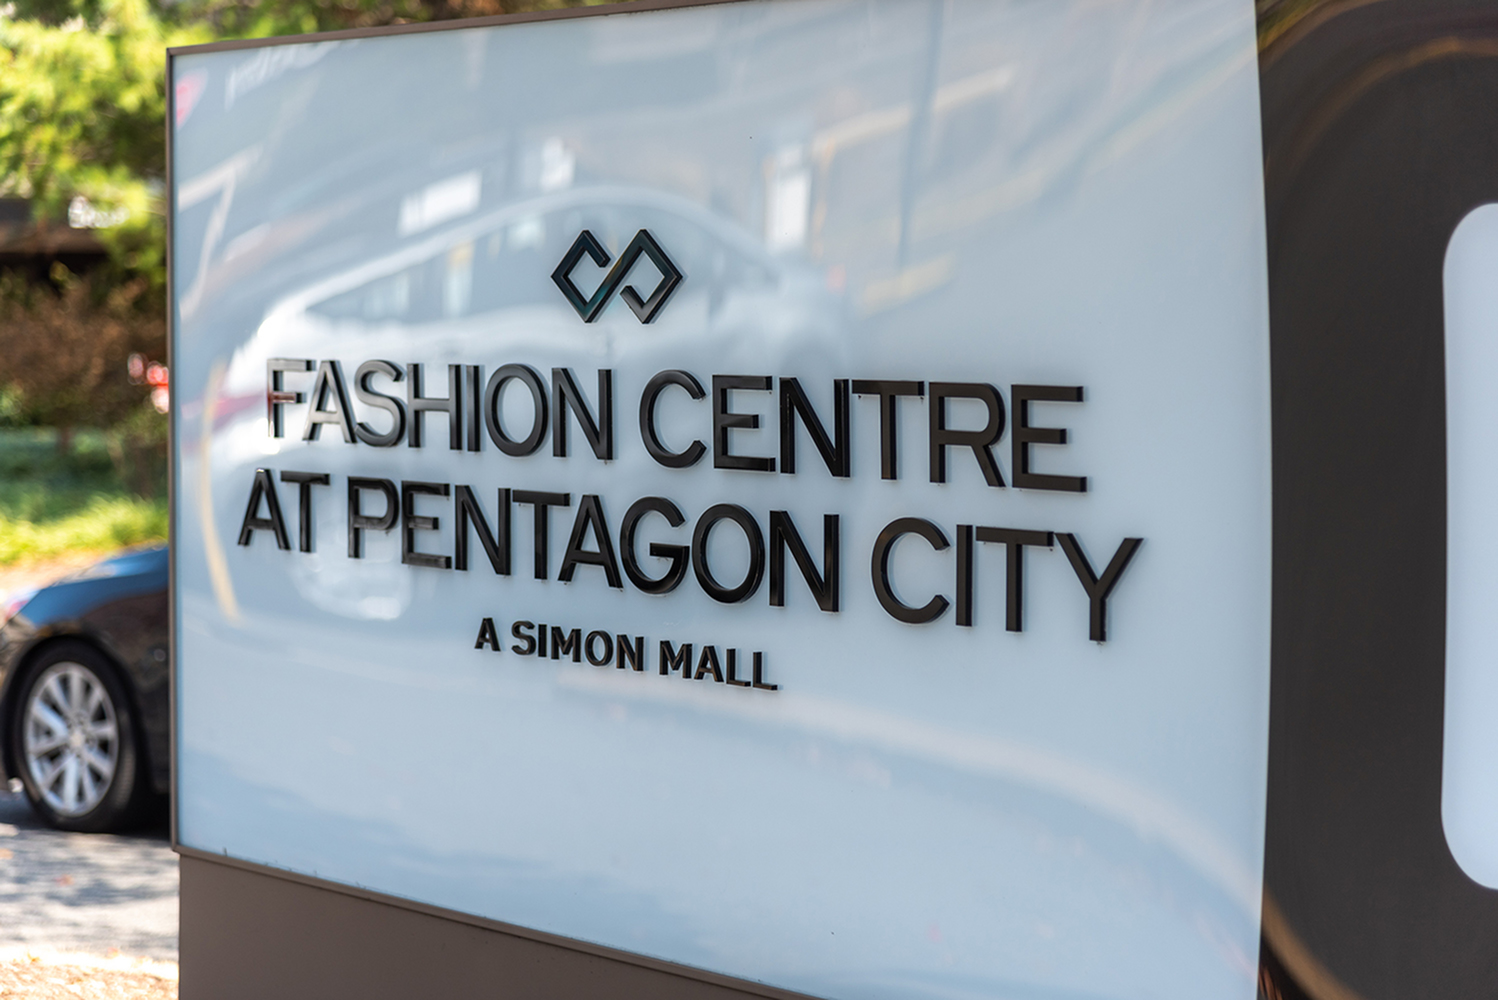 Fashion Centre